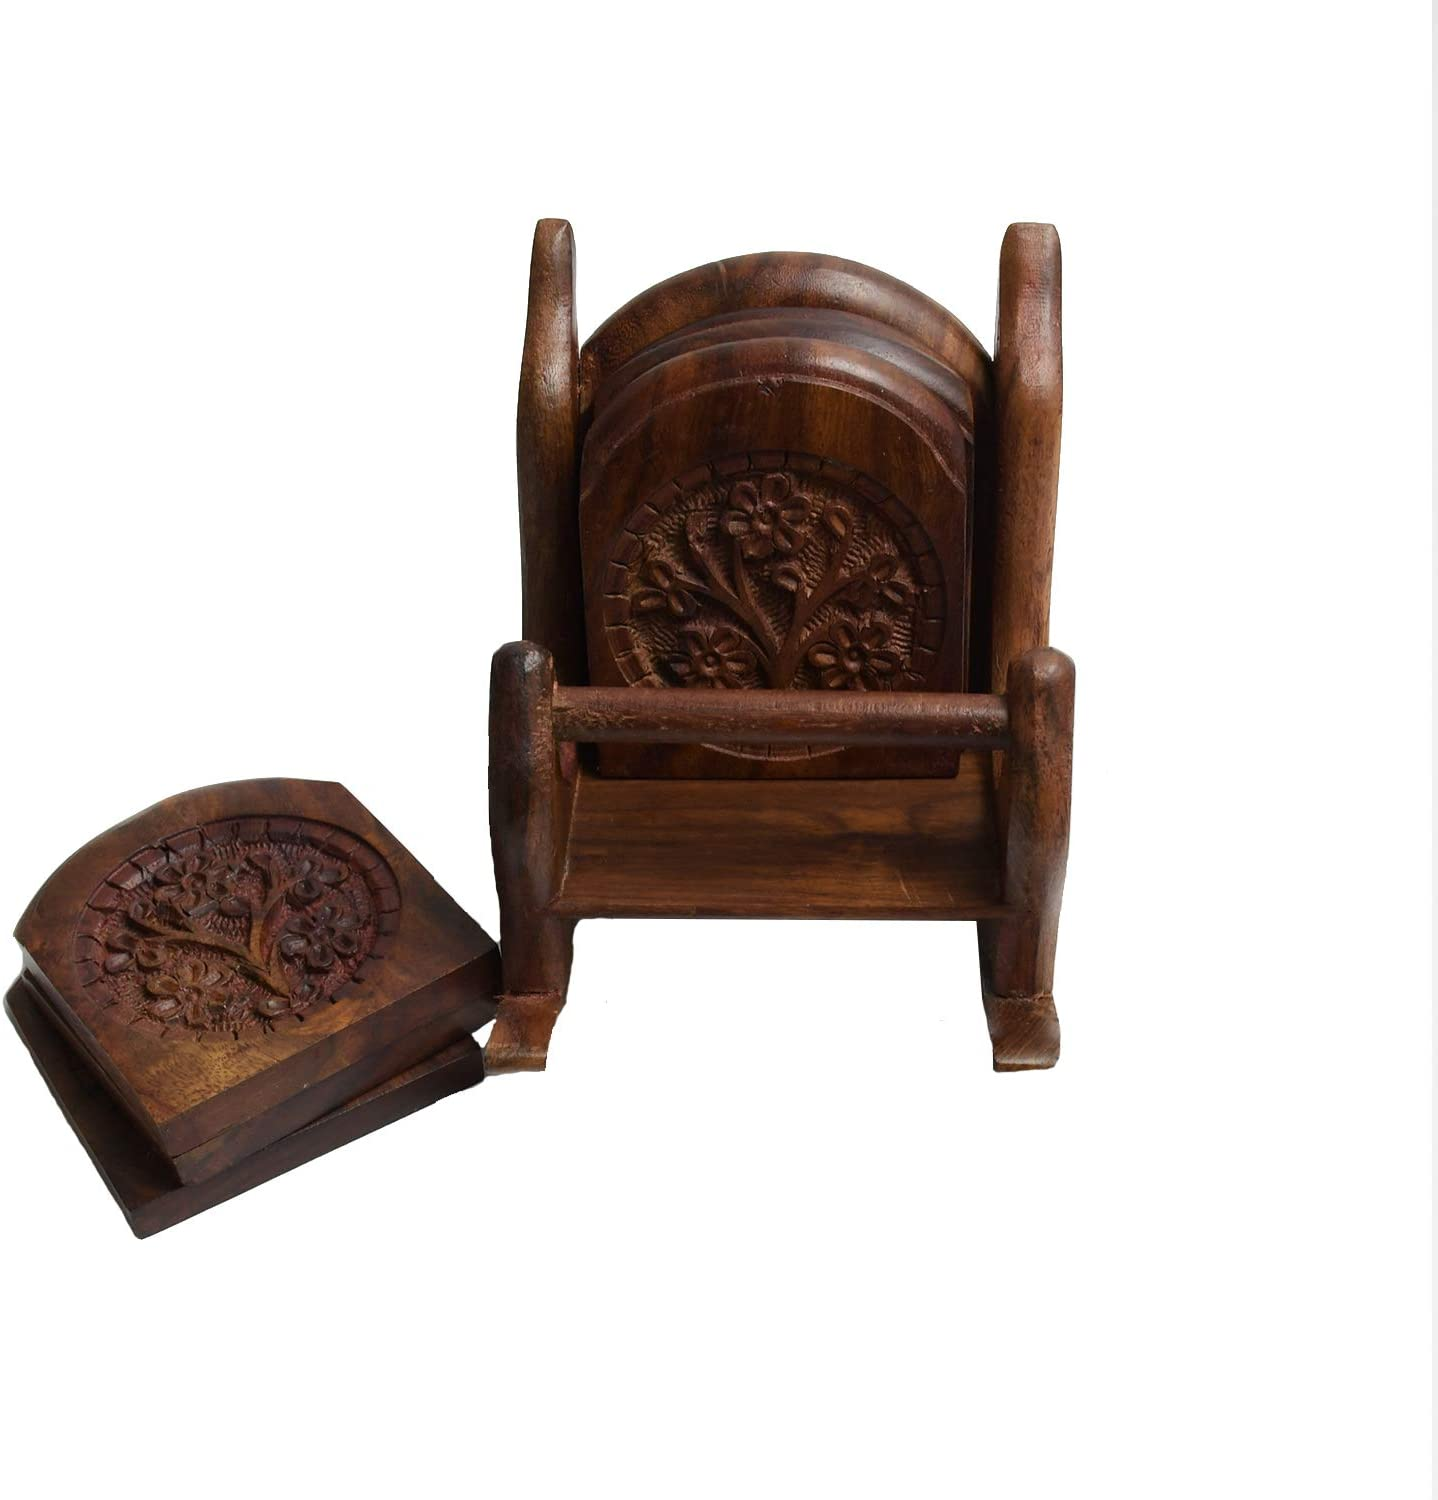 ARIJA Wooden Drink Coasters Set - 100% Natural Acacia Wood with Beautiful Carved Style, Easy to Clean - 6-Piece Coasters Set with Chair Design Holder for Home, Office & Kitchen Table Décor